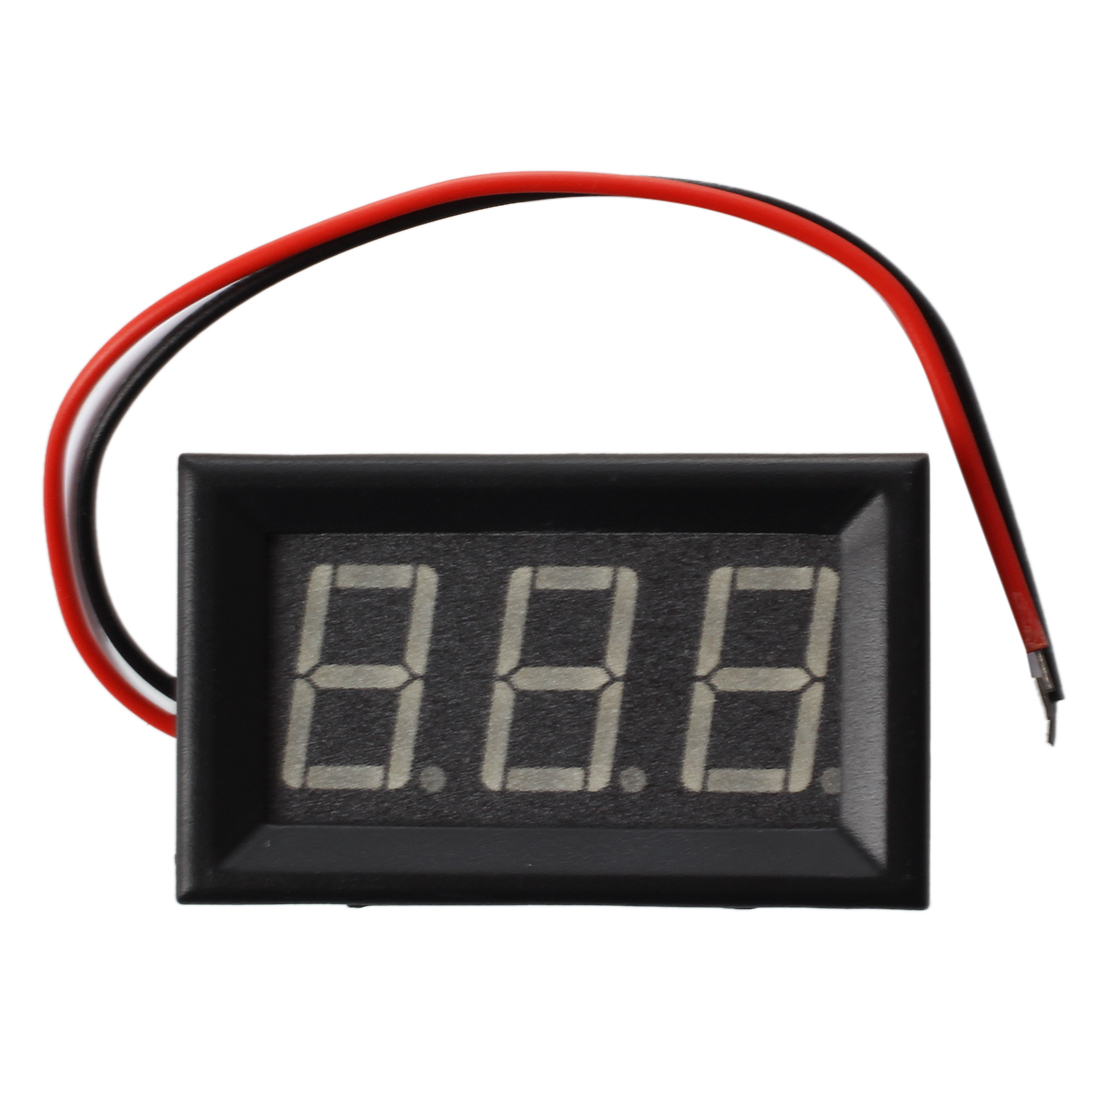 Mini Panelmeter Voltage Voltmeter <font><b>DC</b></font> <font><b>0</b></font> - <font><b>200</b></font> V 20 mA Yellow Three Cables image